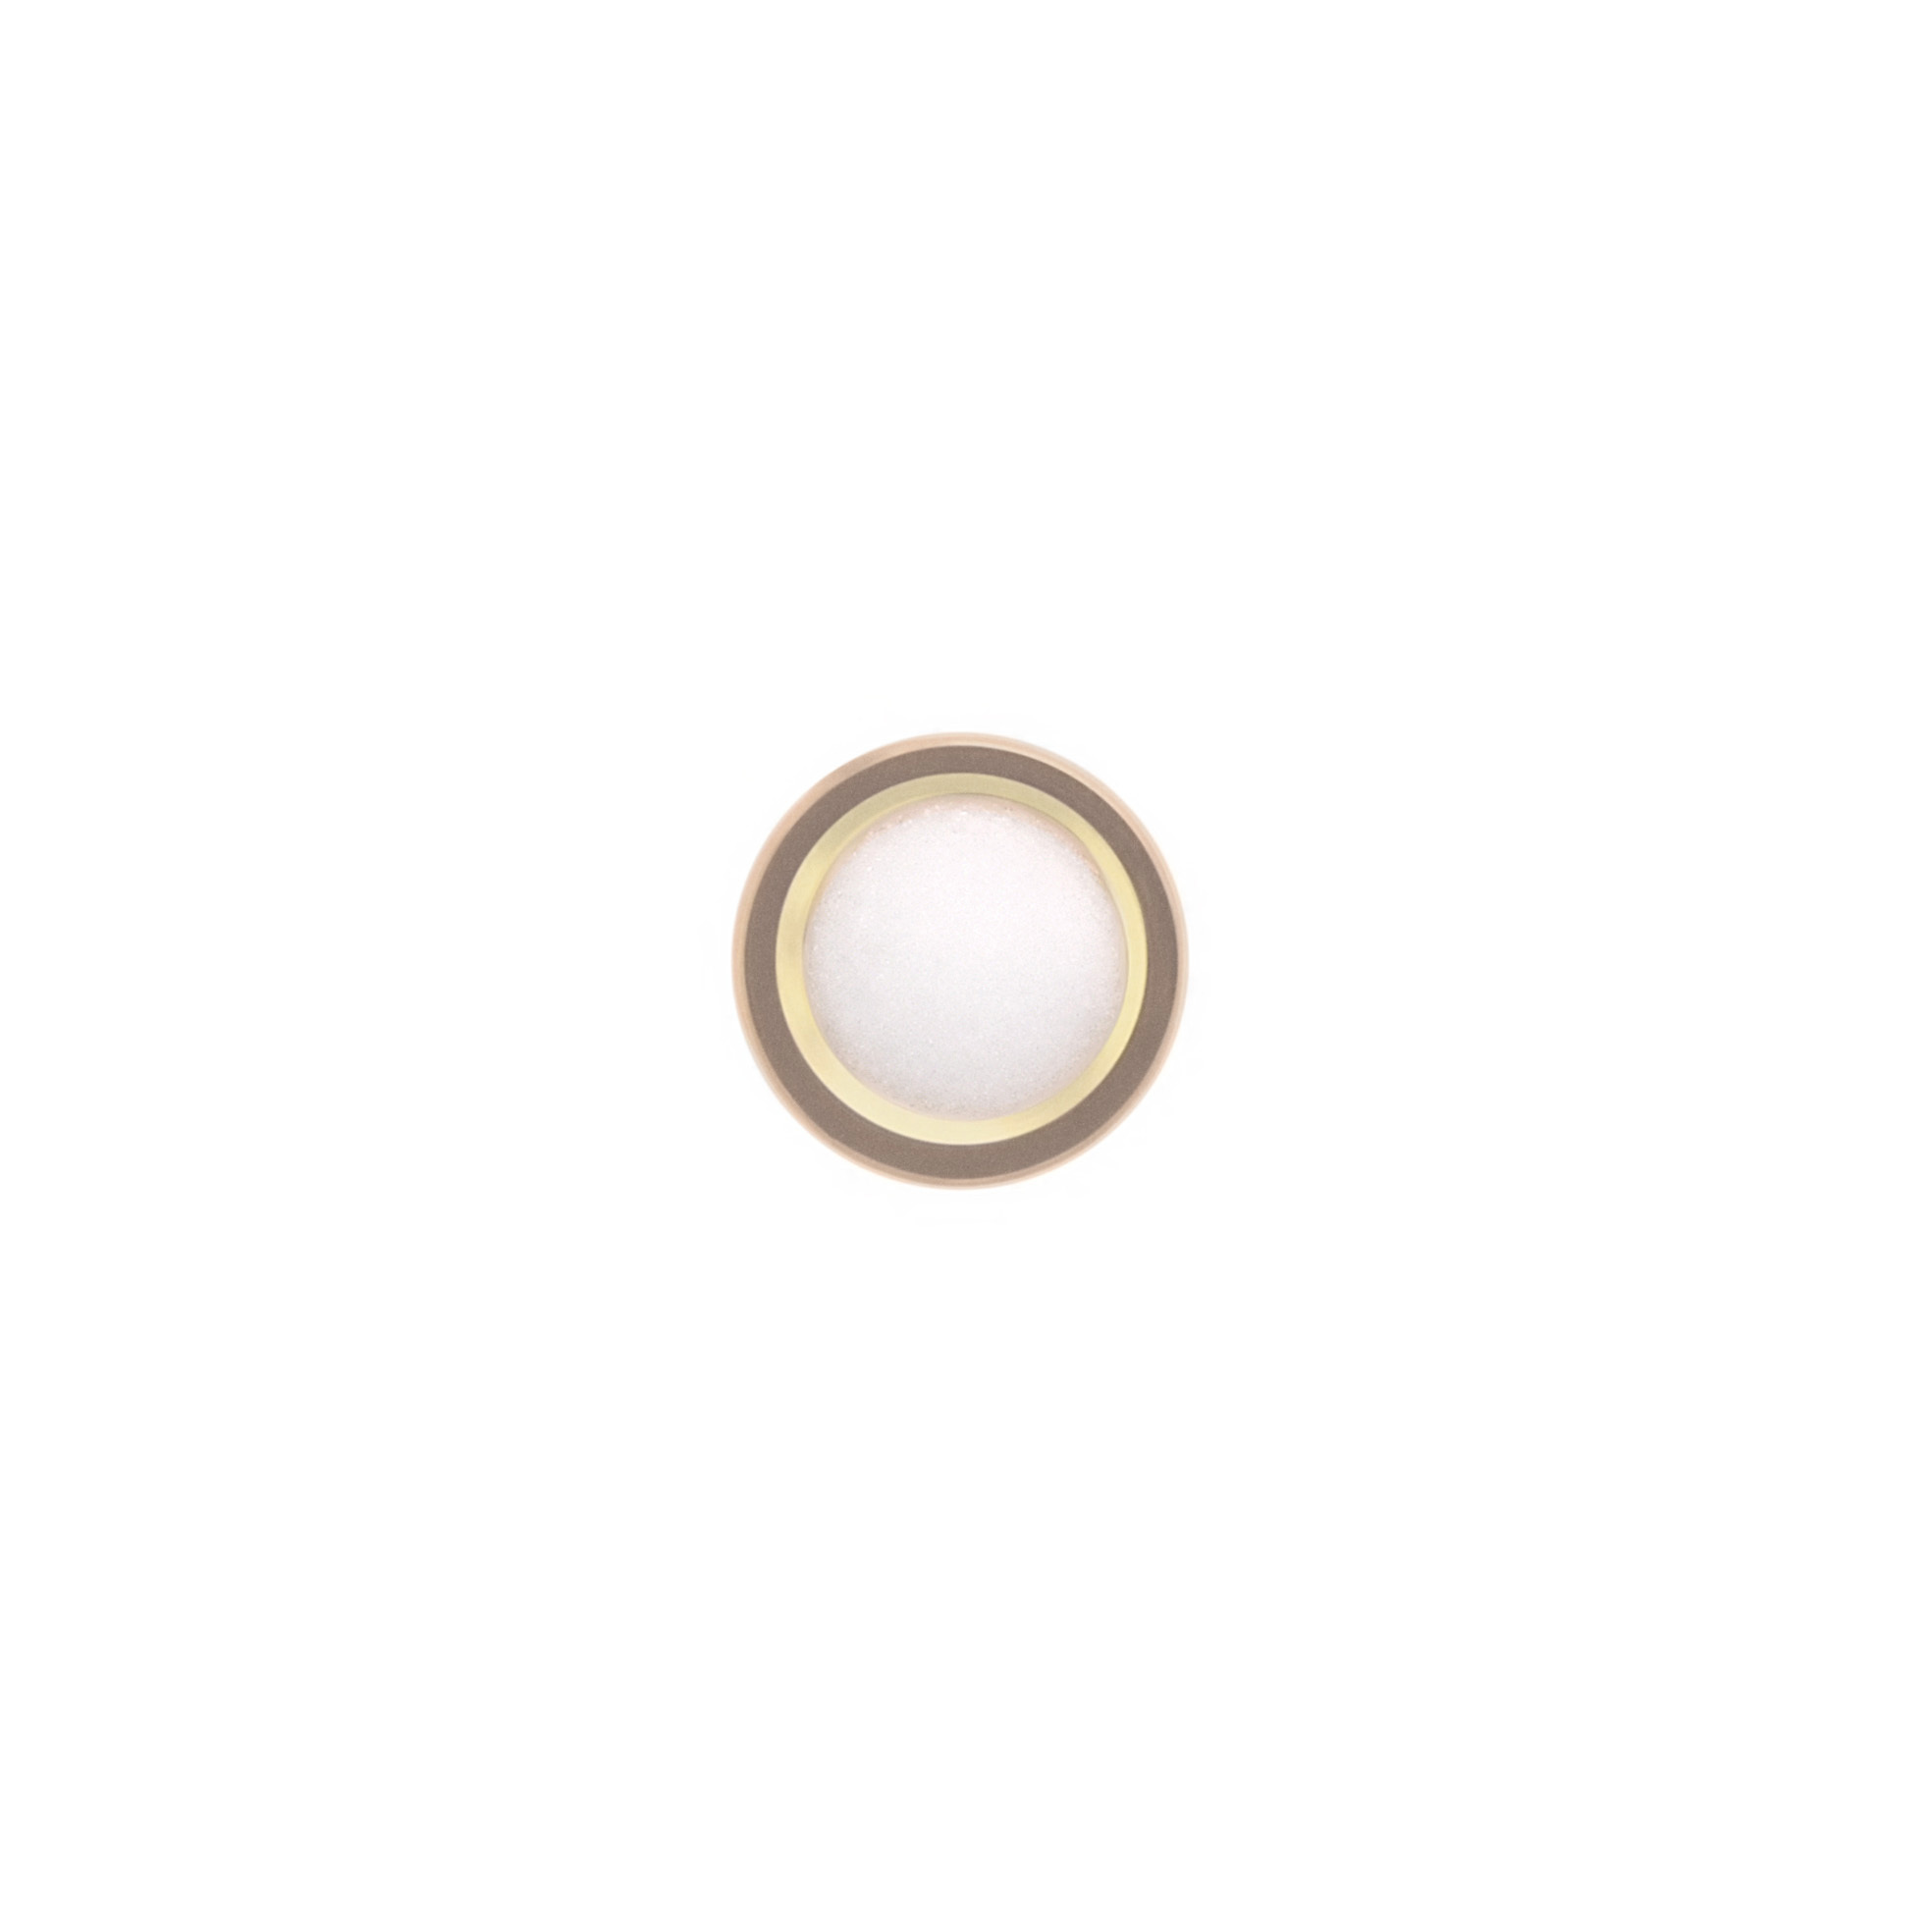 Details about PEARL PIP FOR BEZEL INSERT FOR ROLEX SUBMARINER CERAMIC  116613 BLUE LUME GOLD